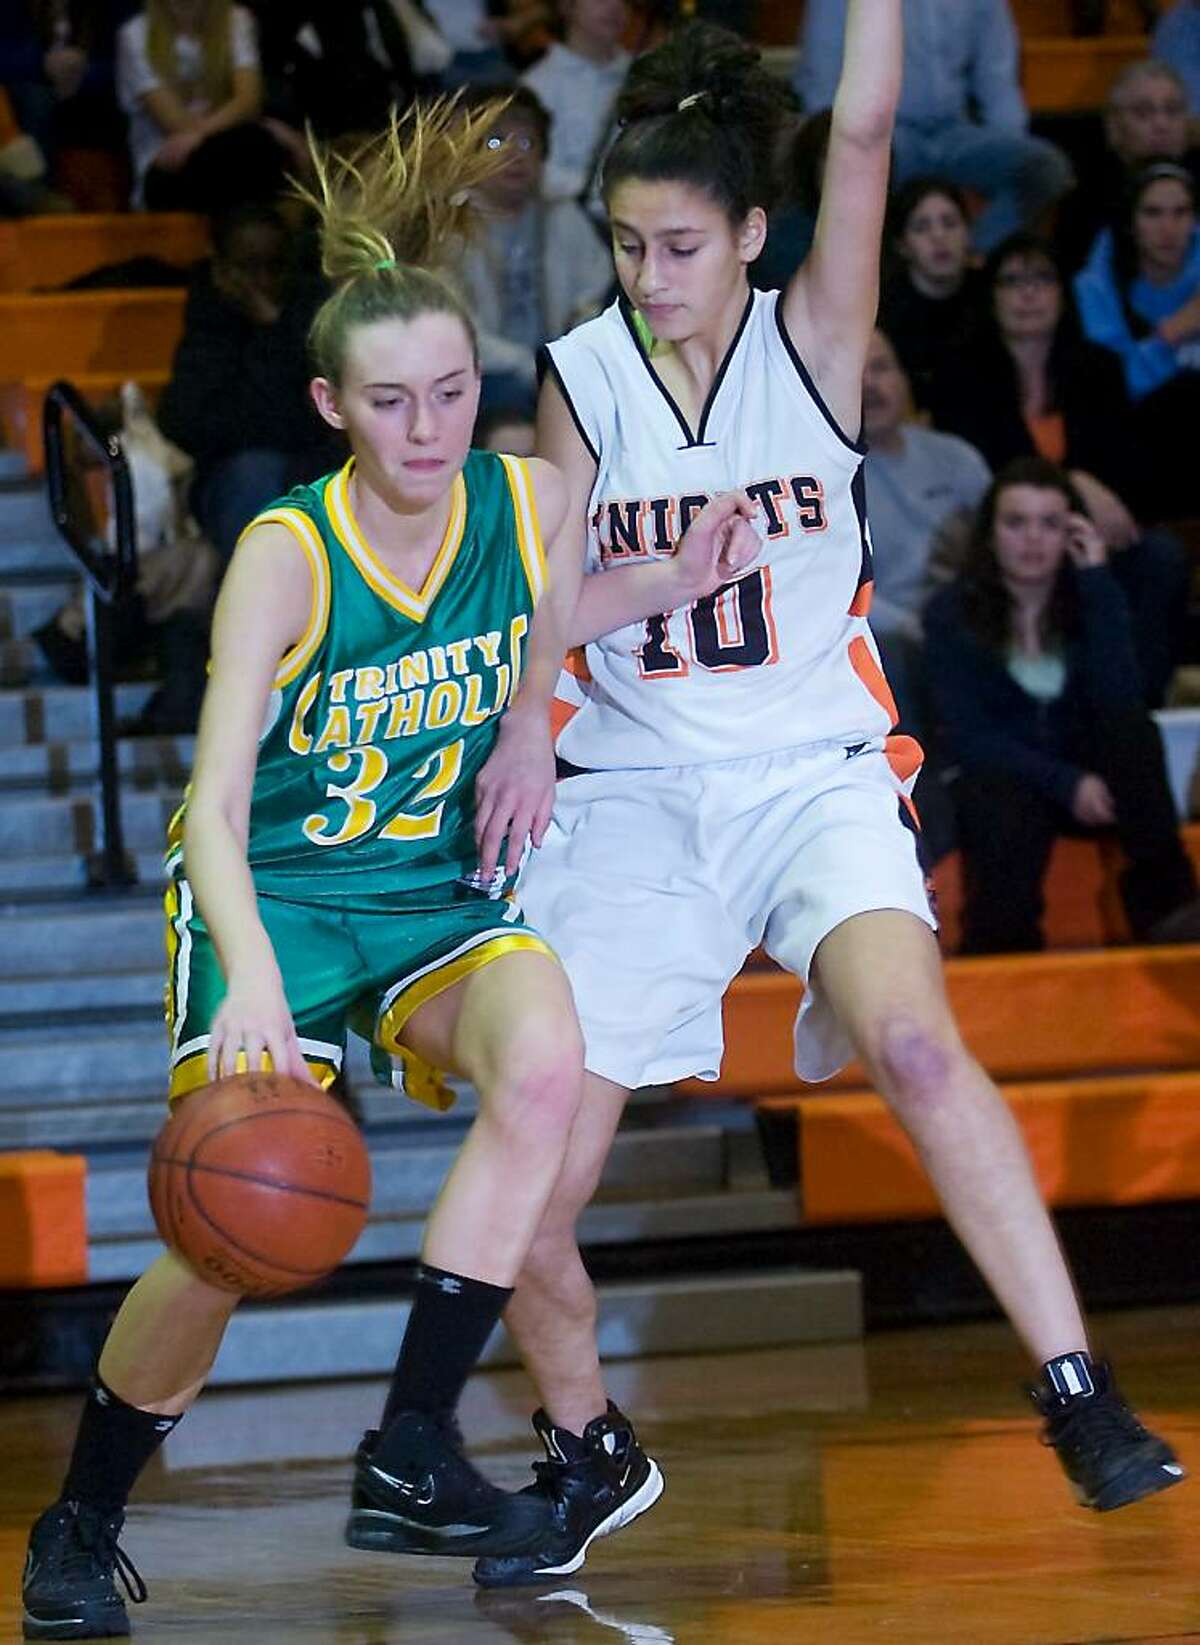 Trinity Catholic's Cayleigh Griffin controls the ball with pressure from Stamford High's Lauren Schapiro in the girls basketball city title game in Stamford, Conn. on Tuesday, Feb. 9, 2010.